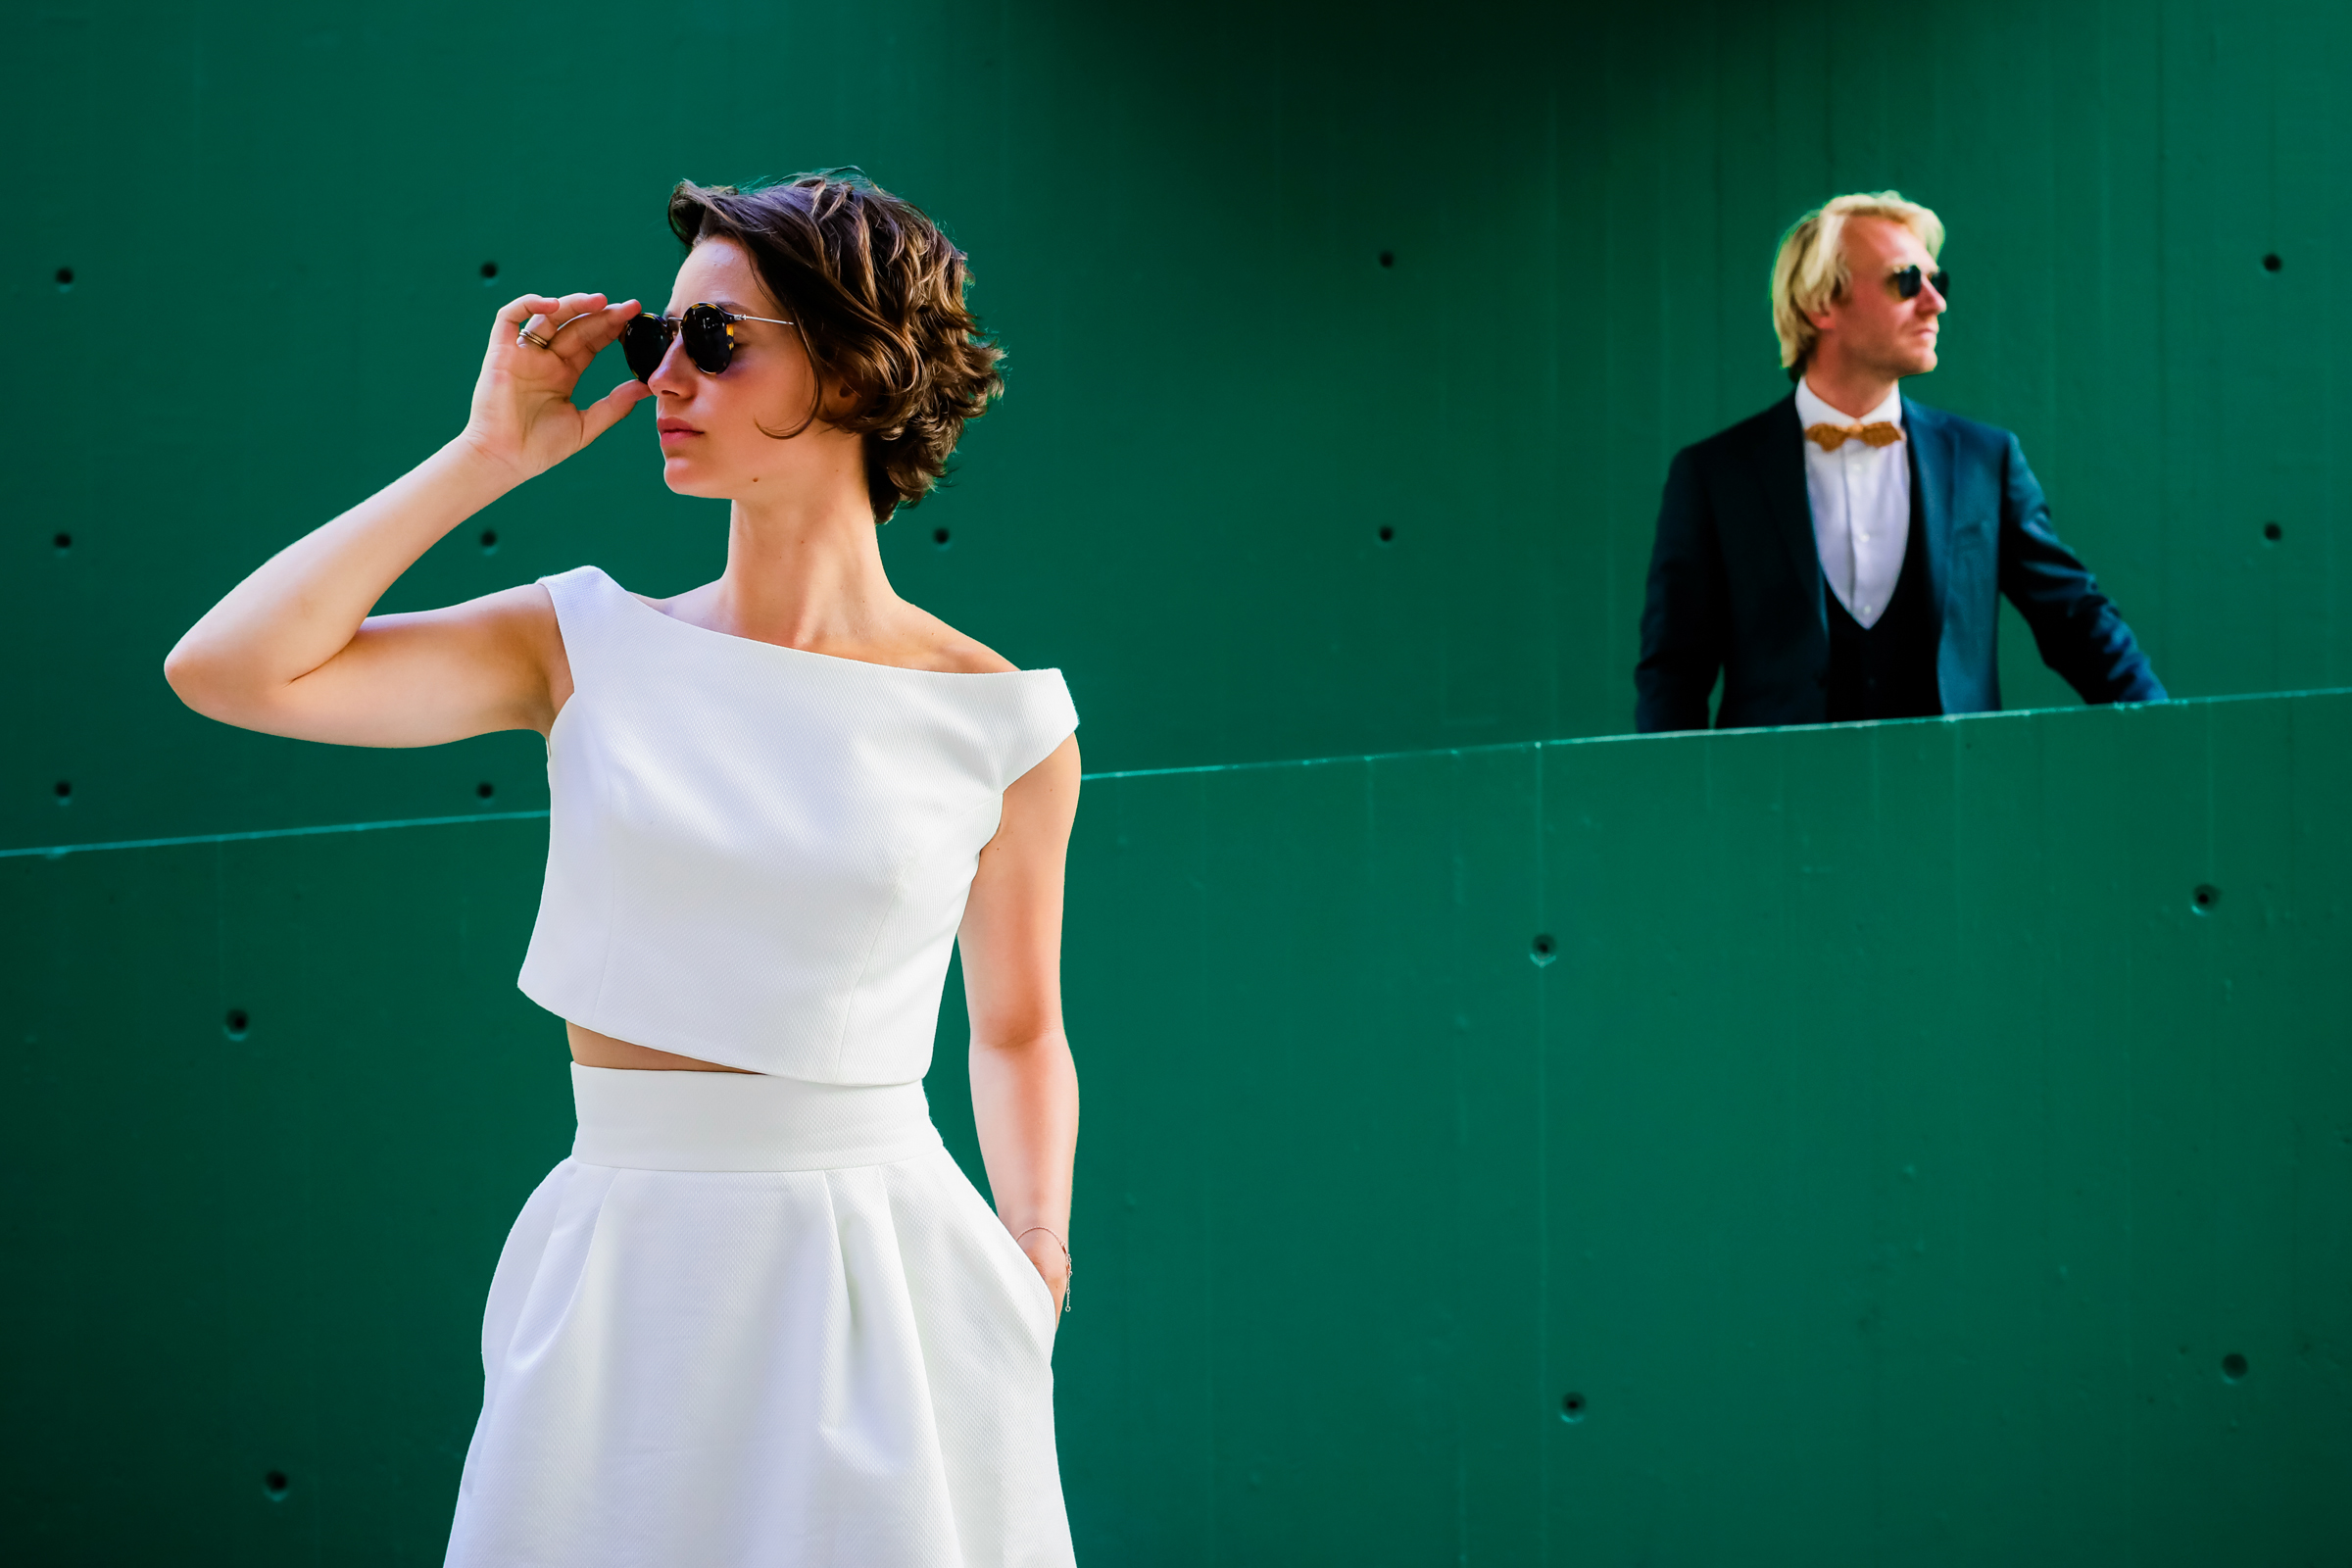 Stylish couple pose against green walls - photo by Julien Laurent-Georges